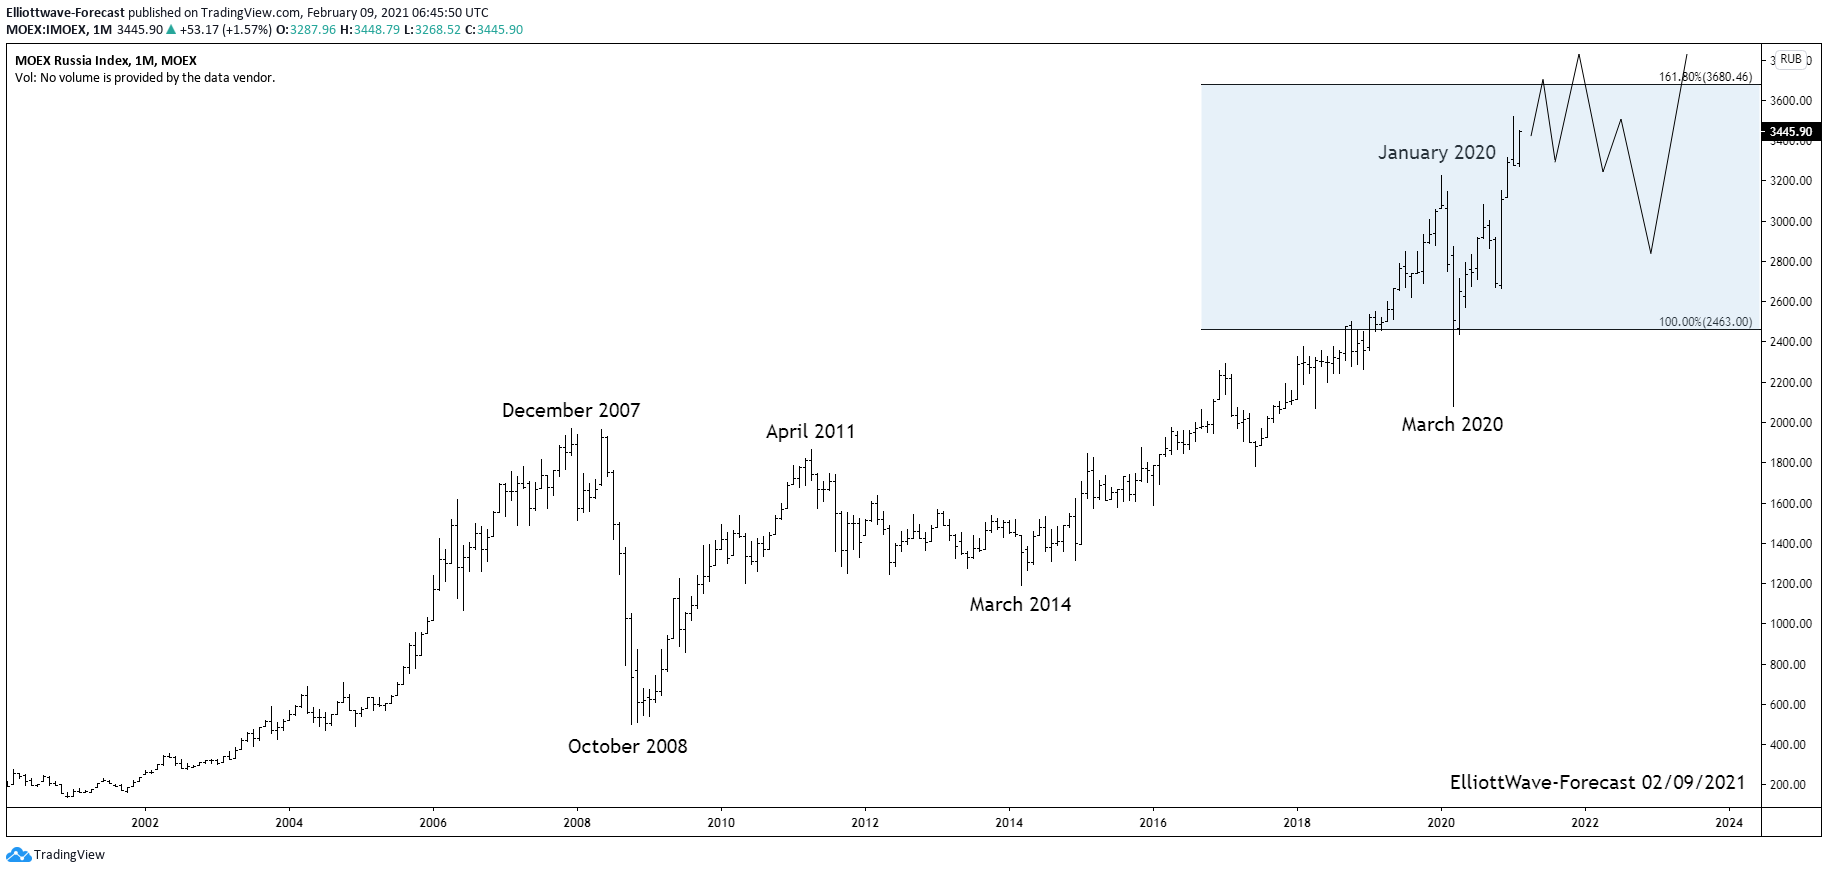 MOEX Russian Index Long Term Cycles and Bullish Trend